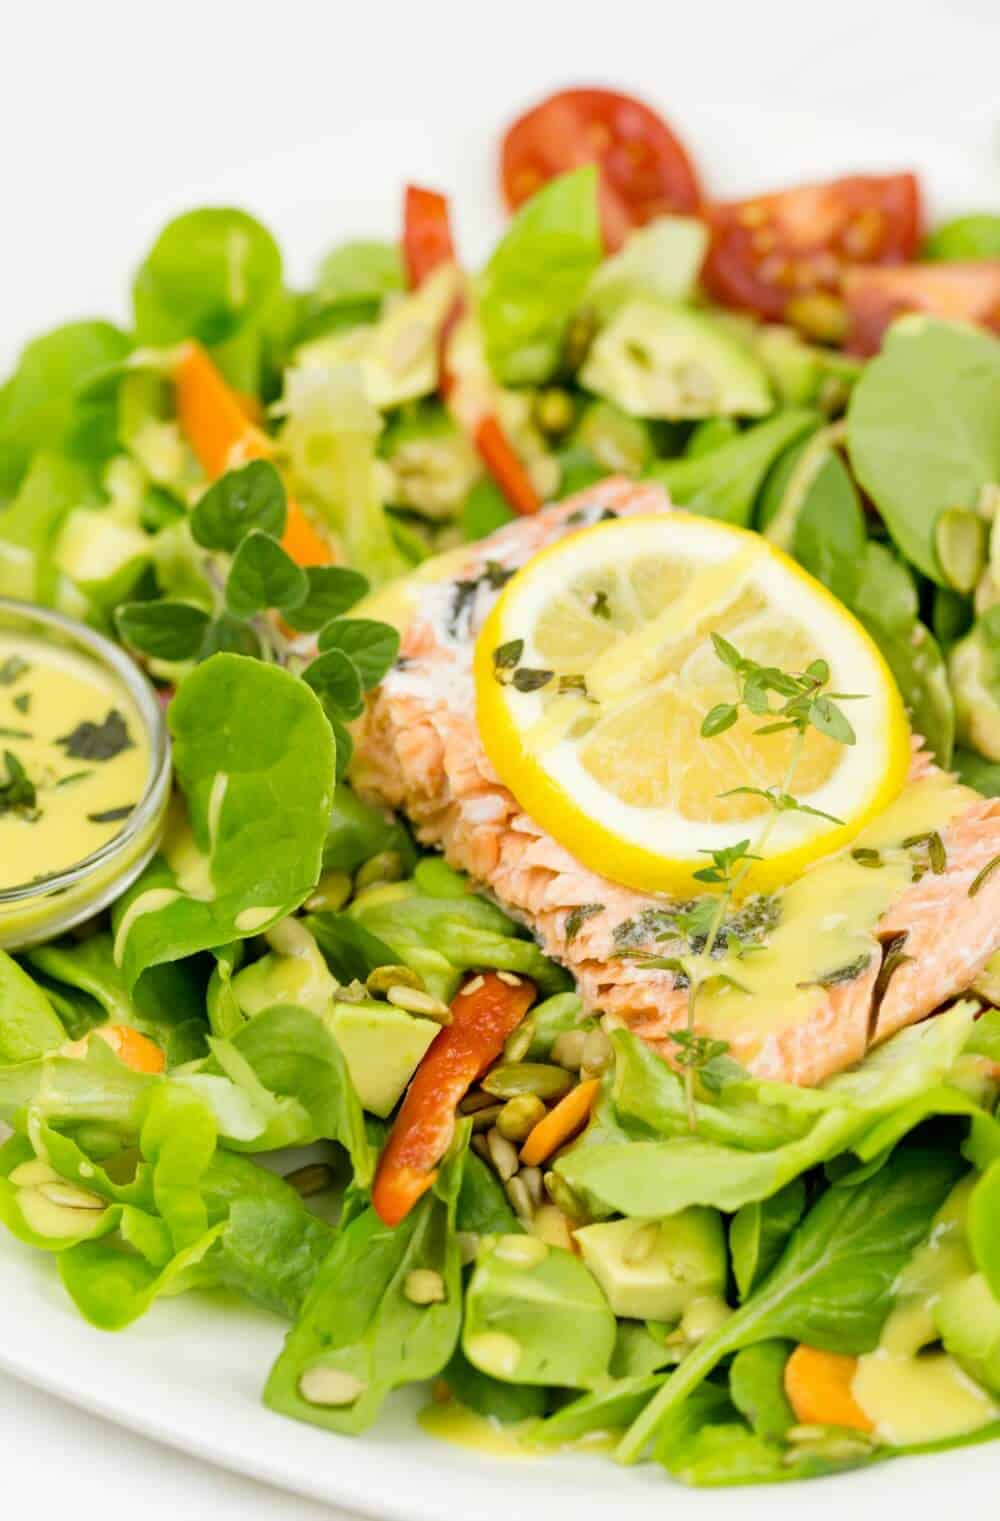 Lemon and Herb Salmon with Honey Mustard Dressing Recipe